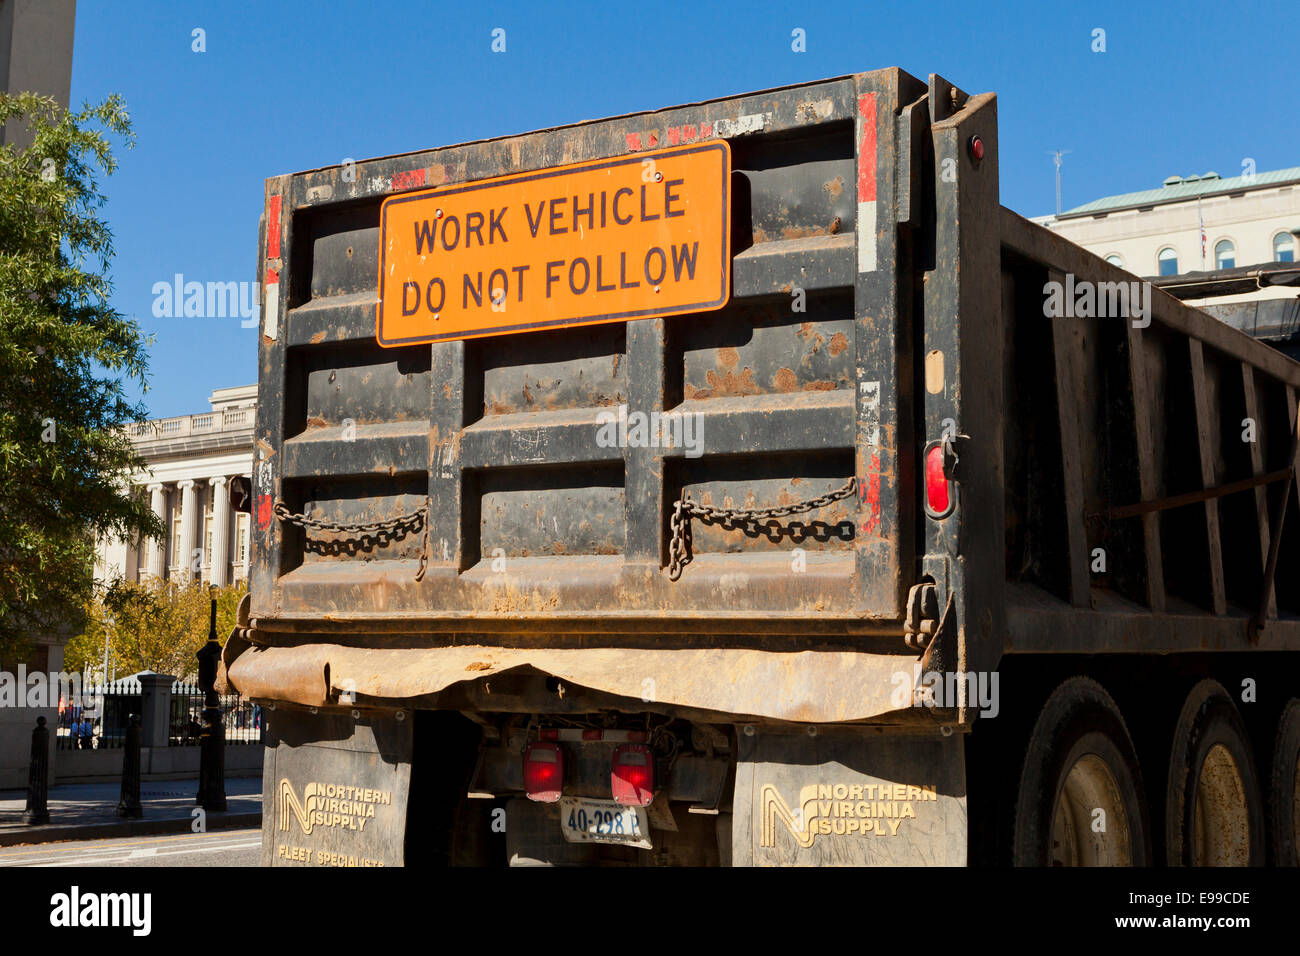 Do not follow warning message of construction work truck - USA - Stock Image